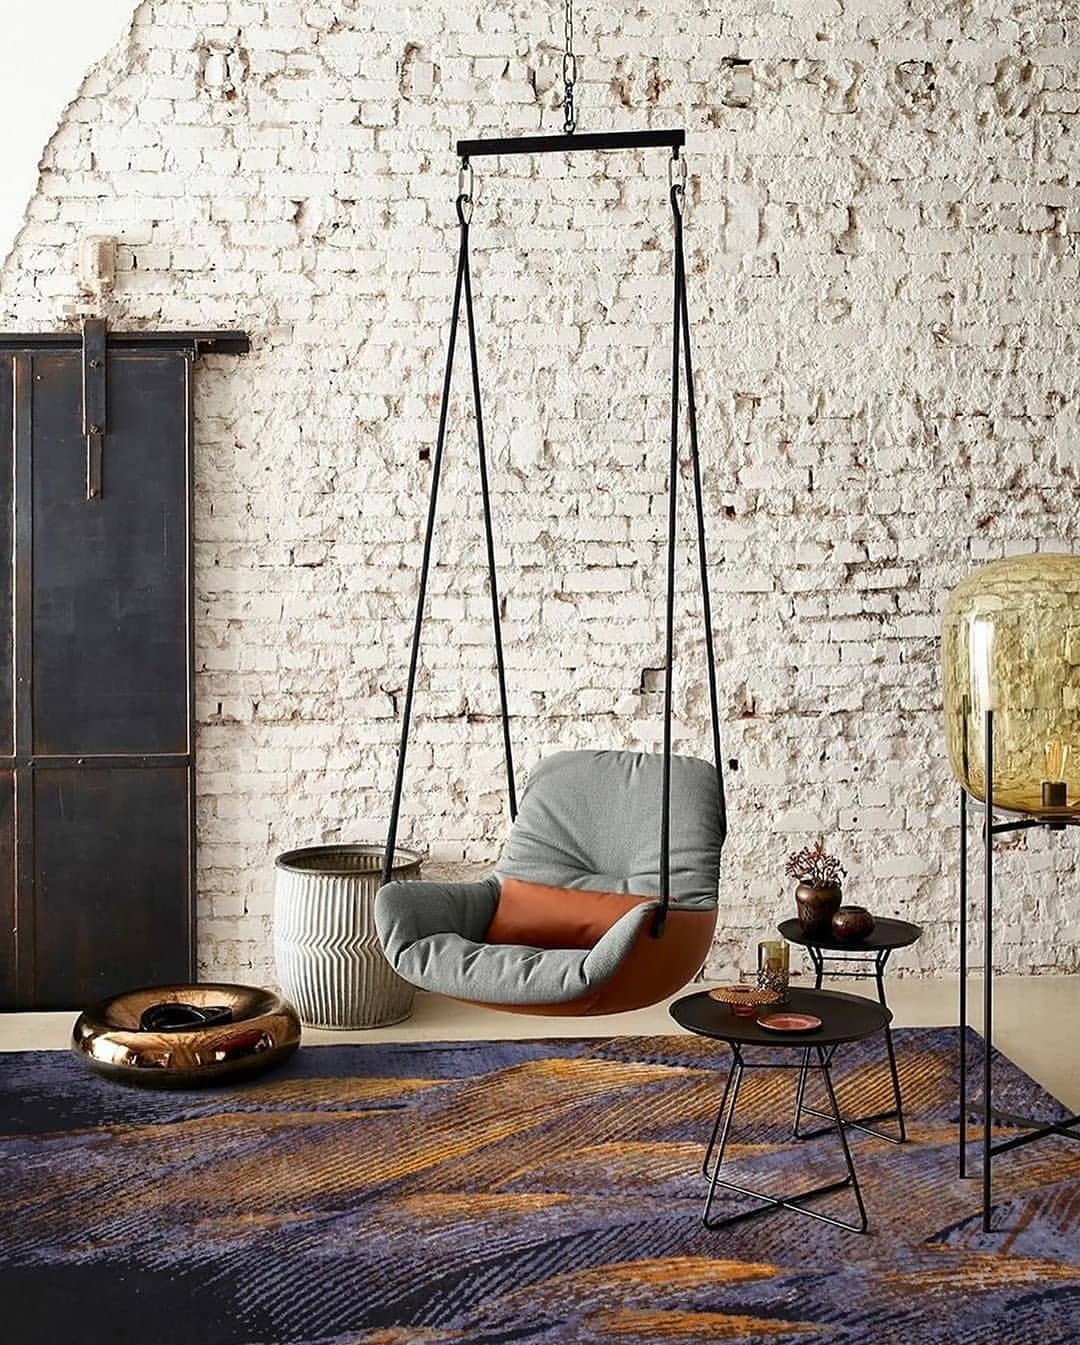 grey-swing-seat-hanging-from-ceiling